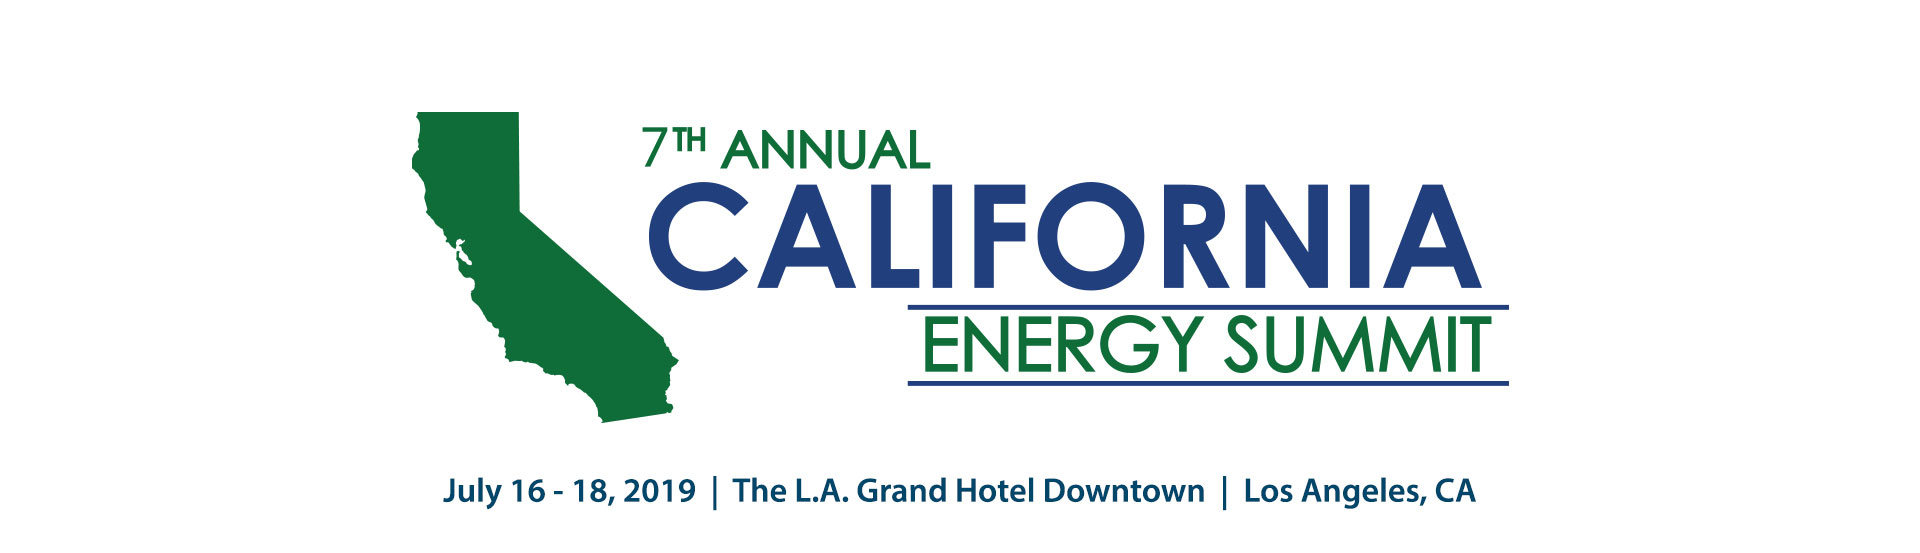 CA Energy Summit 2019 - Presented by Infocast